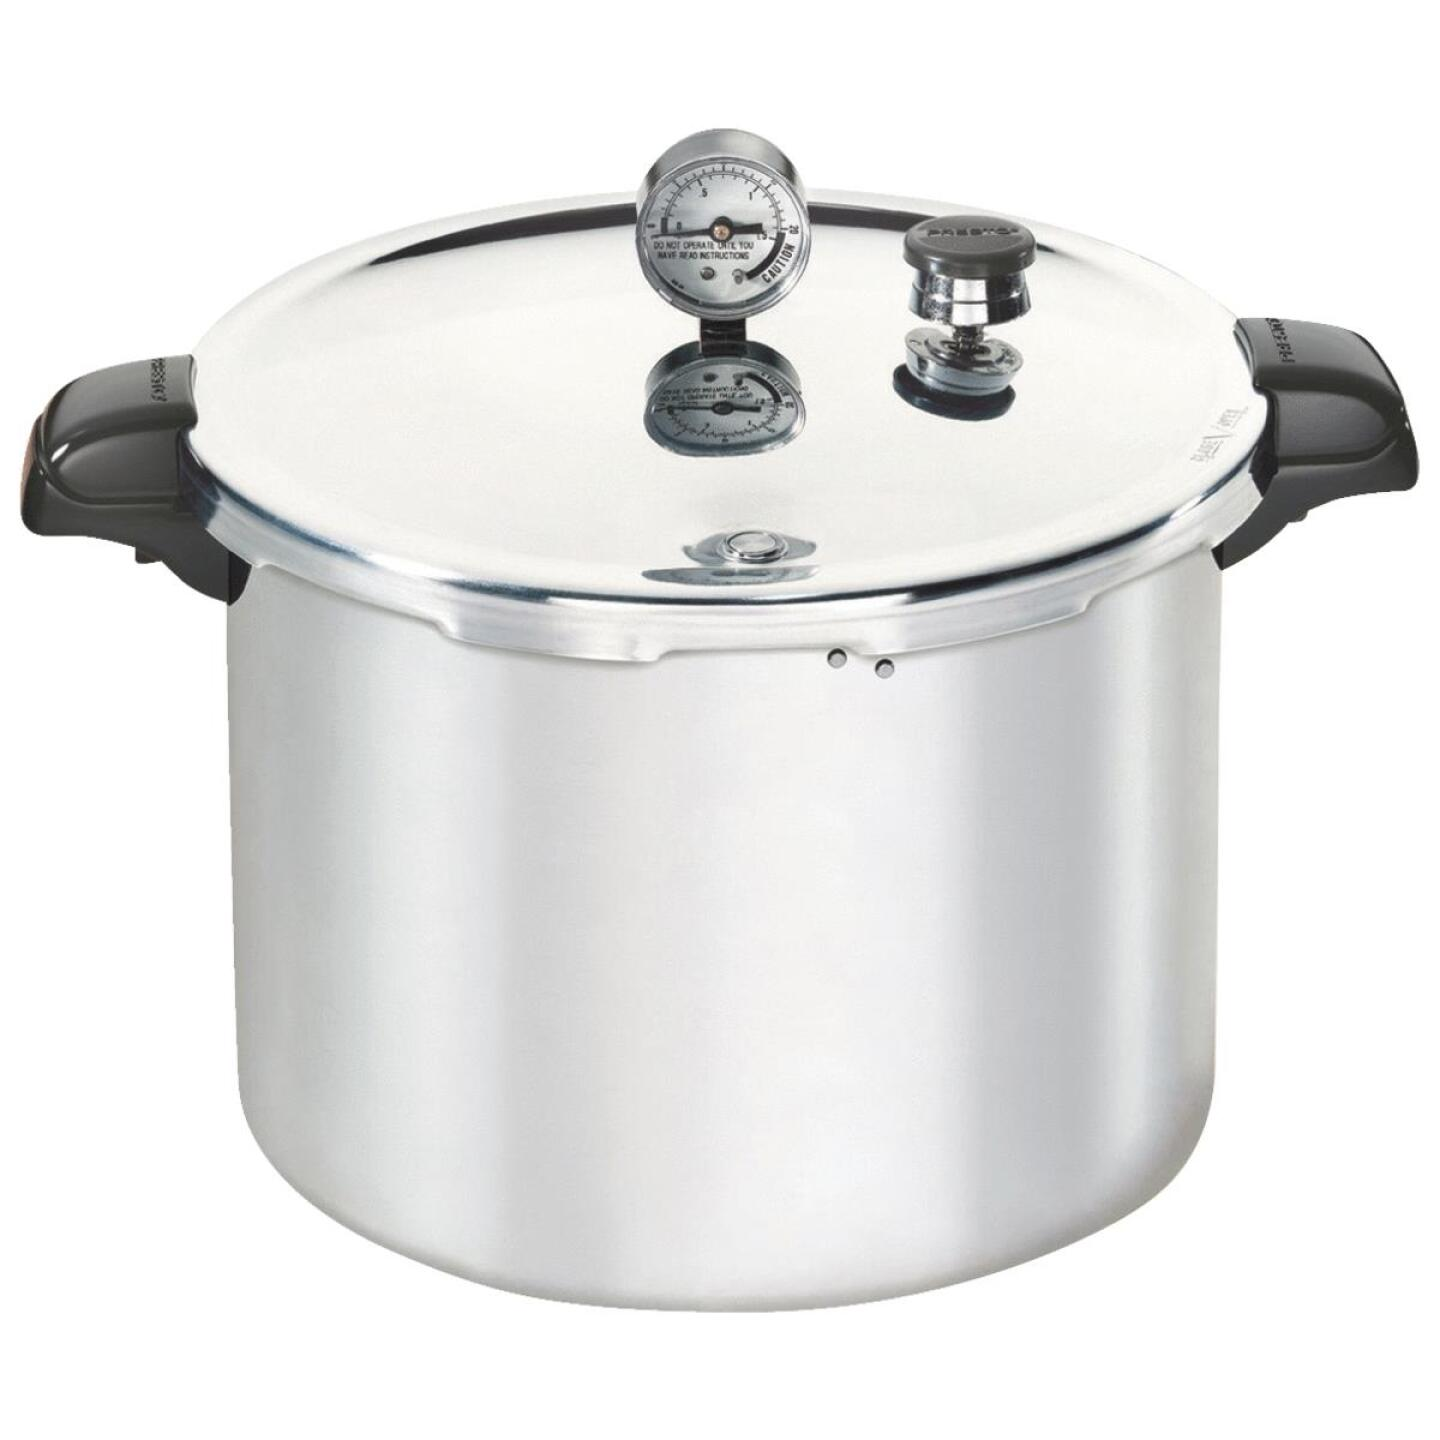 Presto 16 qt Presto Cooker and Canner Image 1